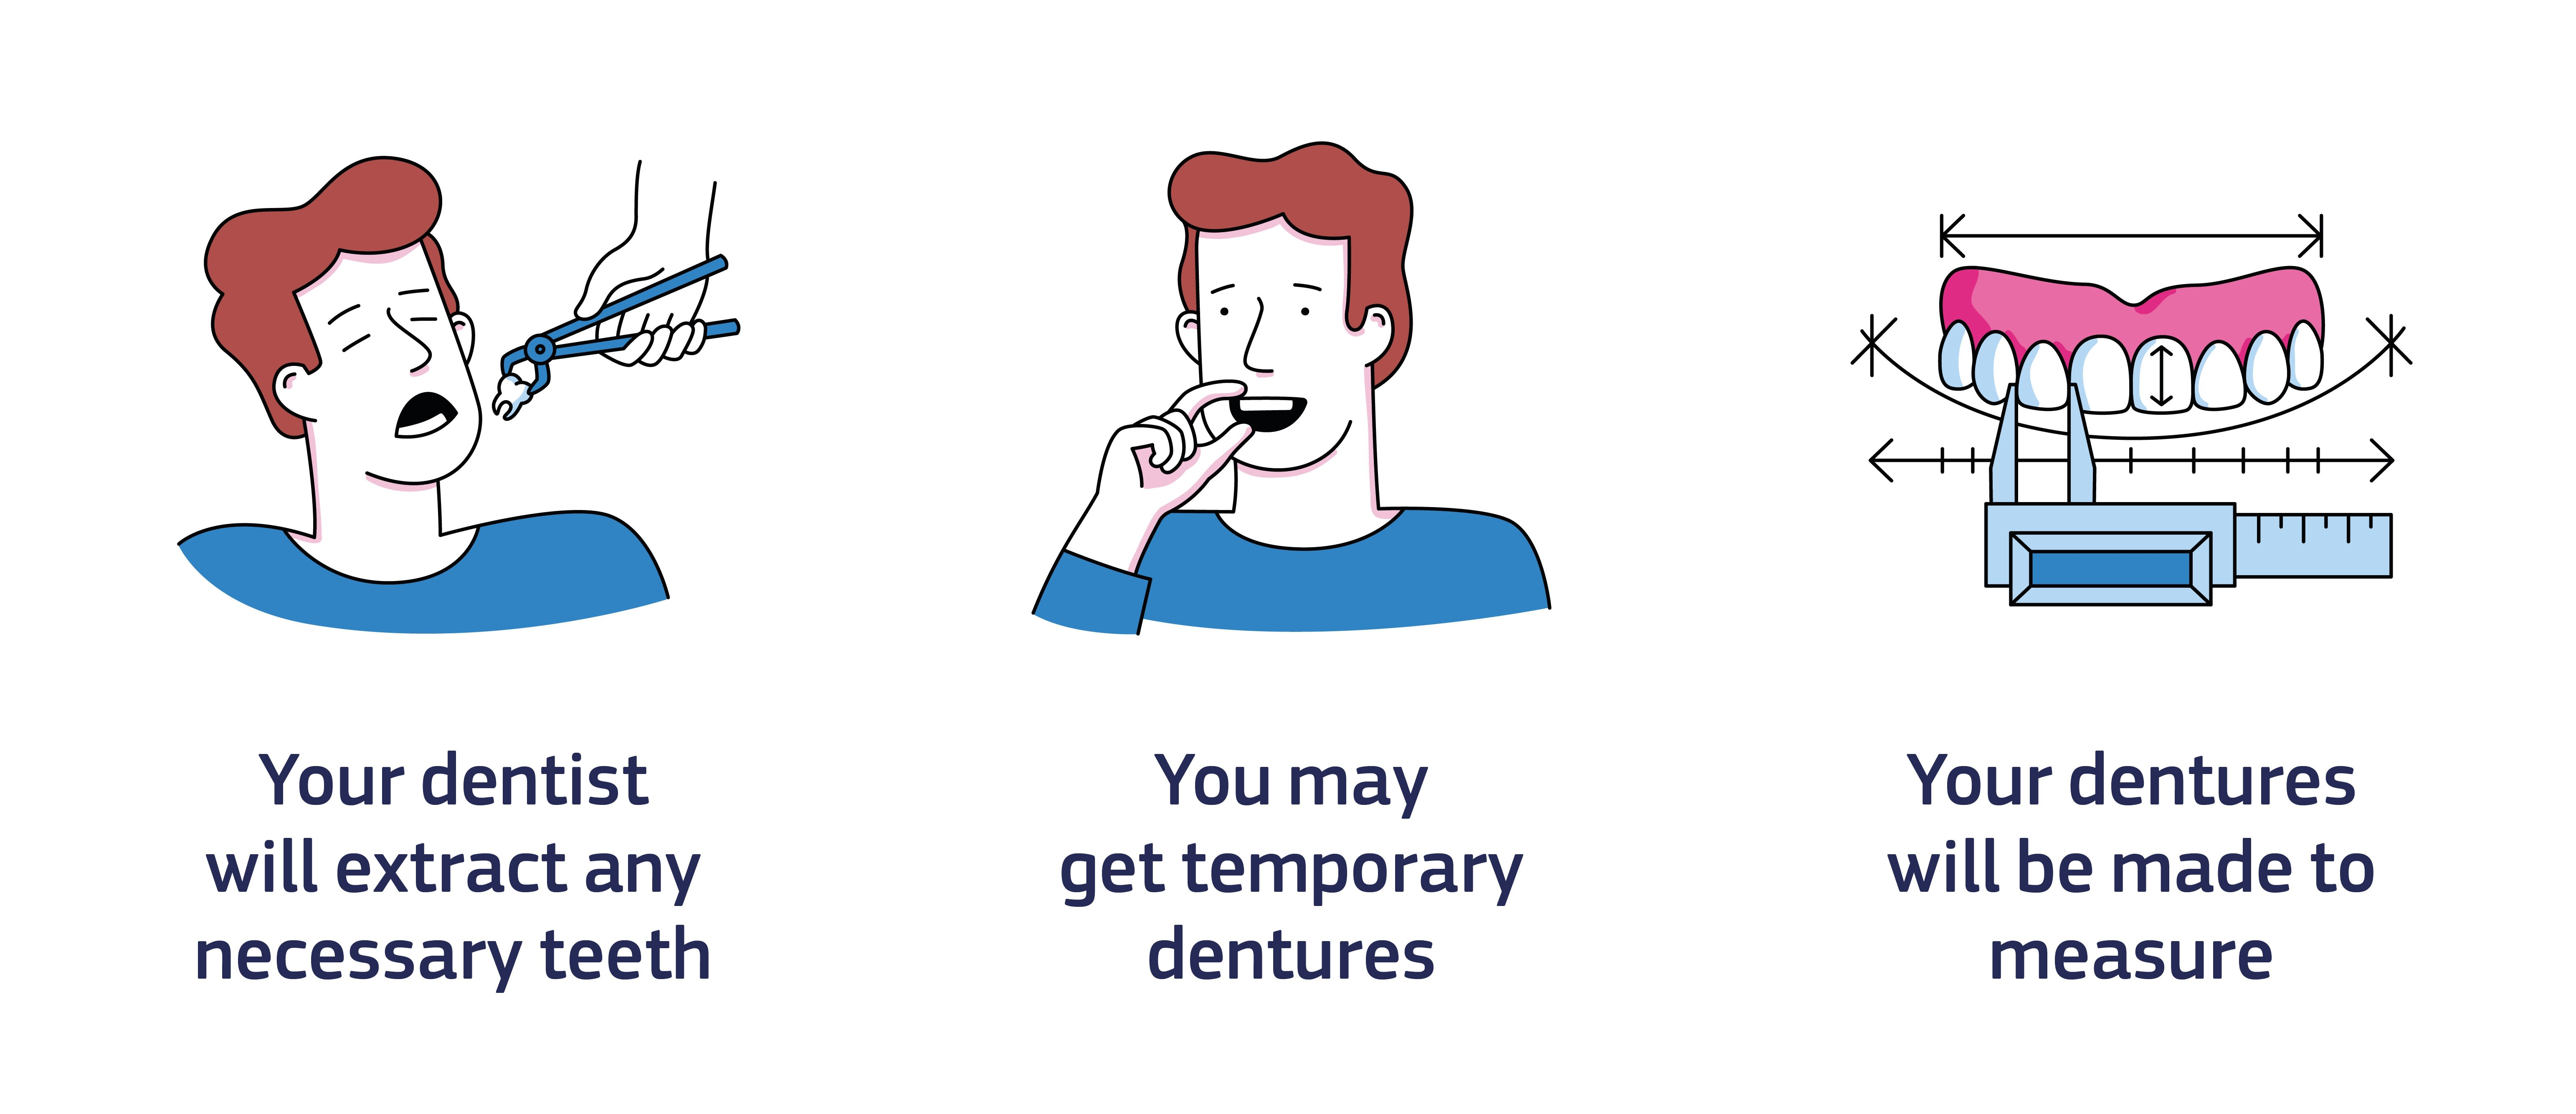 An infographic showing what to expect at the dentist: Step 1. Your dentist will extract any necessary teeth. Step 2. You may get temporary dentures. Step 3. Your dentures will be made to measure.